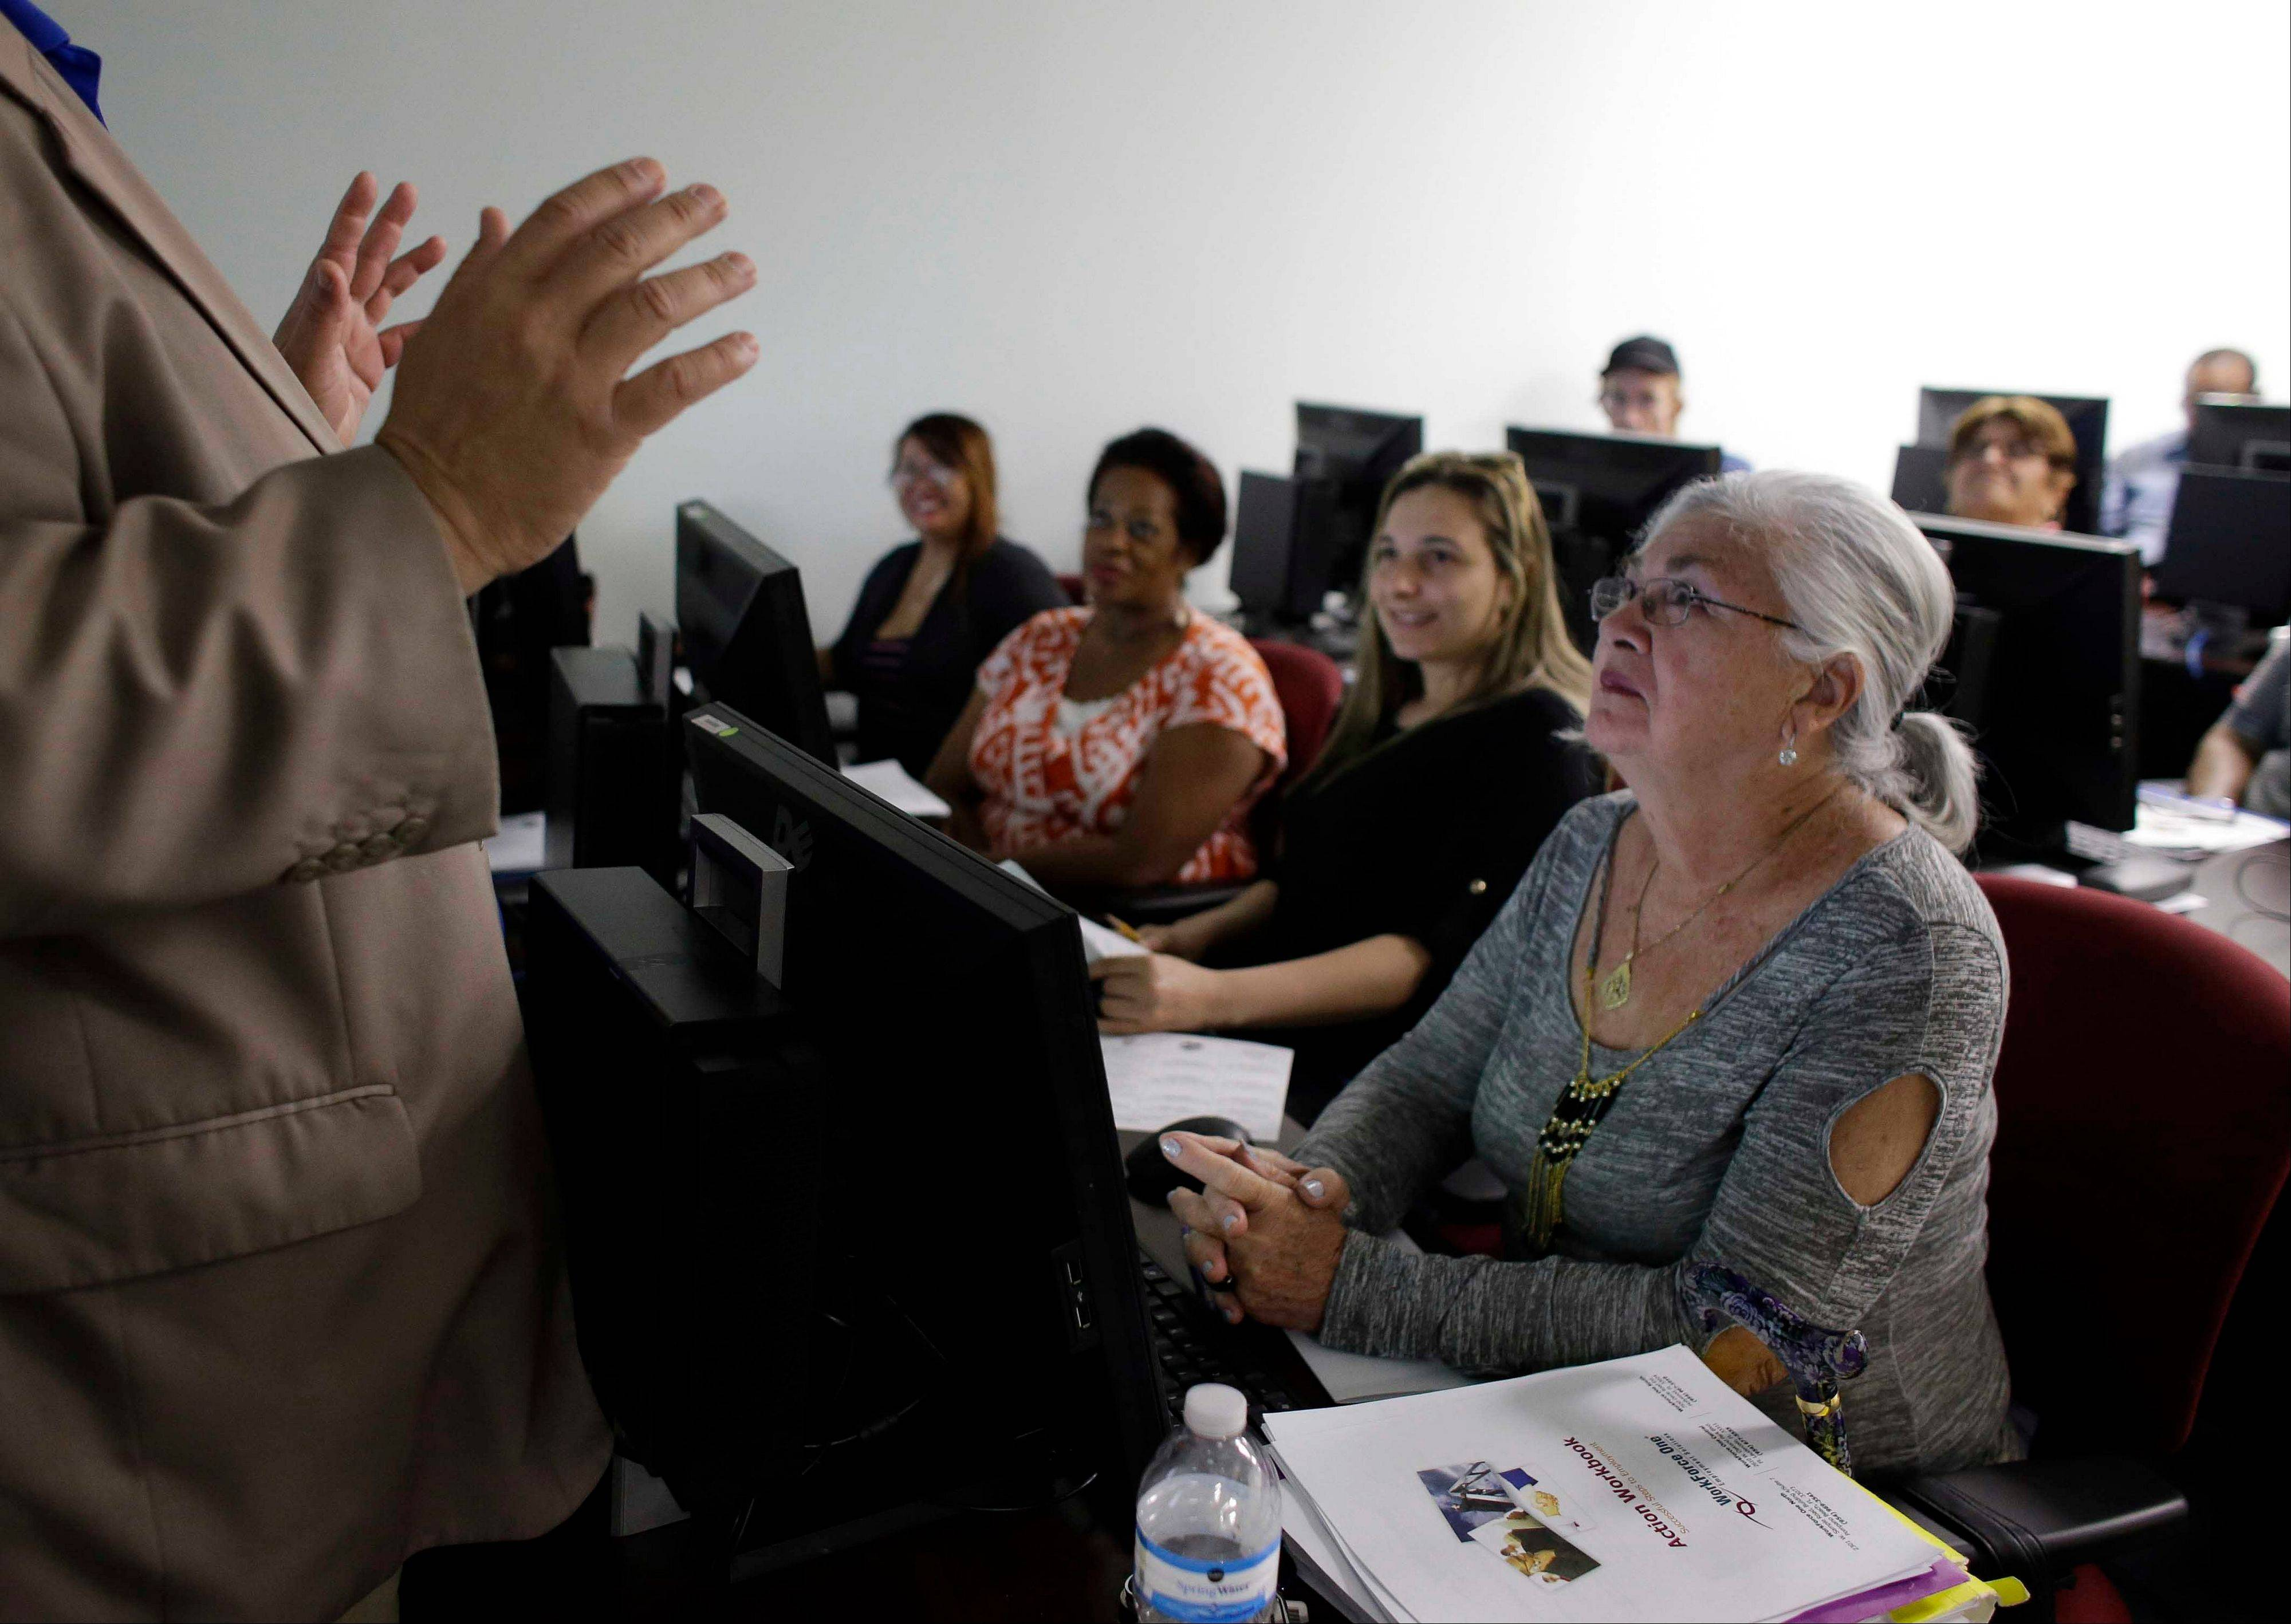 Rosi Pozzi, 73, of Davie, Fla., right, listens during a job search workshop at WorkForce One, in Davie, Fla. Two straight weak job reports have raised doubts about economists� predictions of breakout growth in 2014. The global economy is showing signs of slowing again.